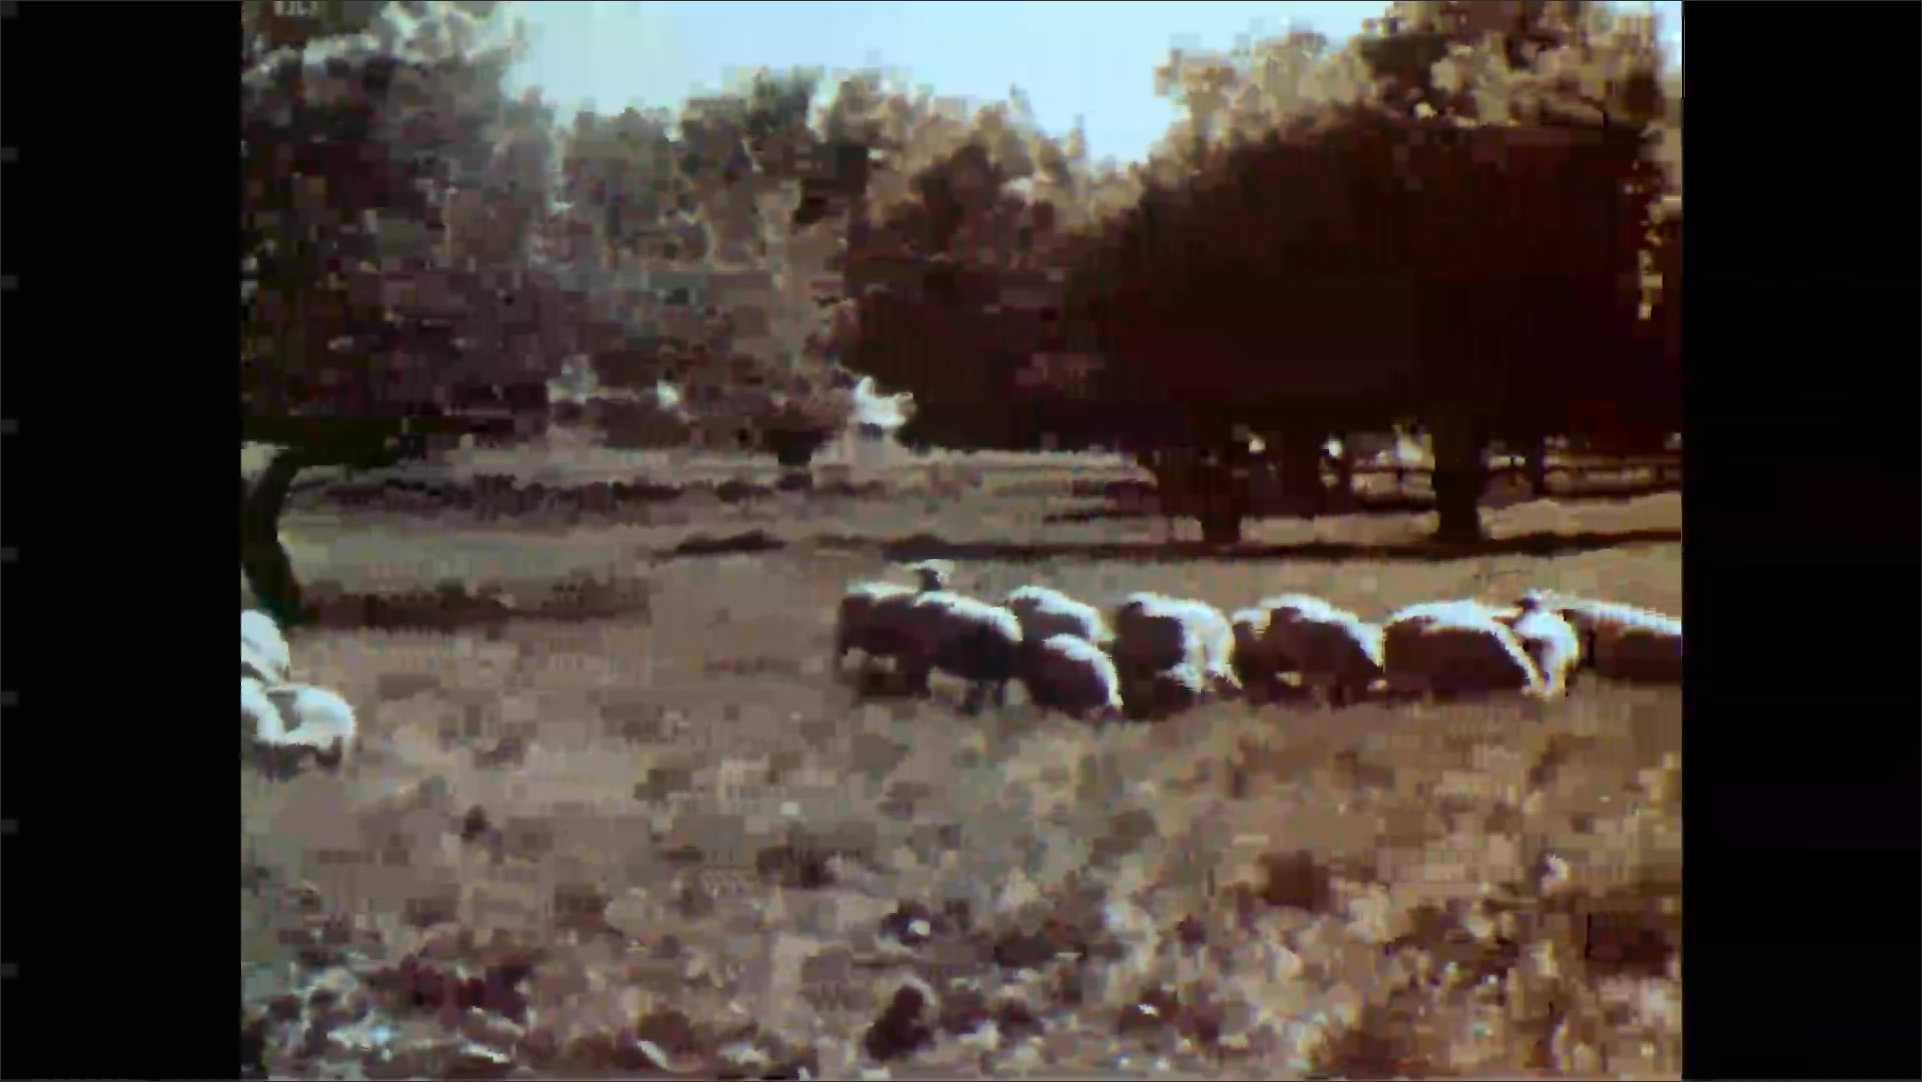 1950s: Man and girl watch lambs in meadow. Man and girl talk and nod. Flocks of sheep and lambs graze and walk in meadow.